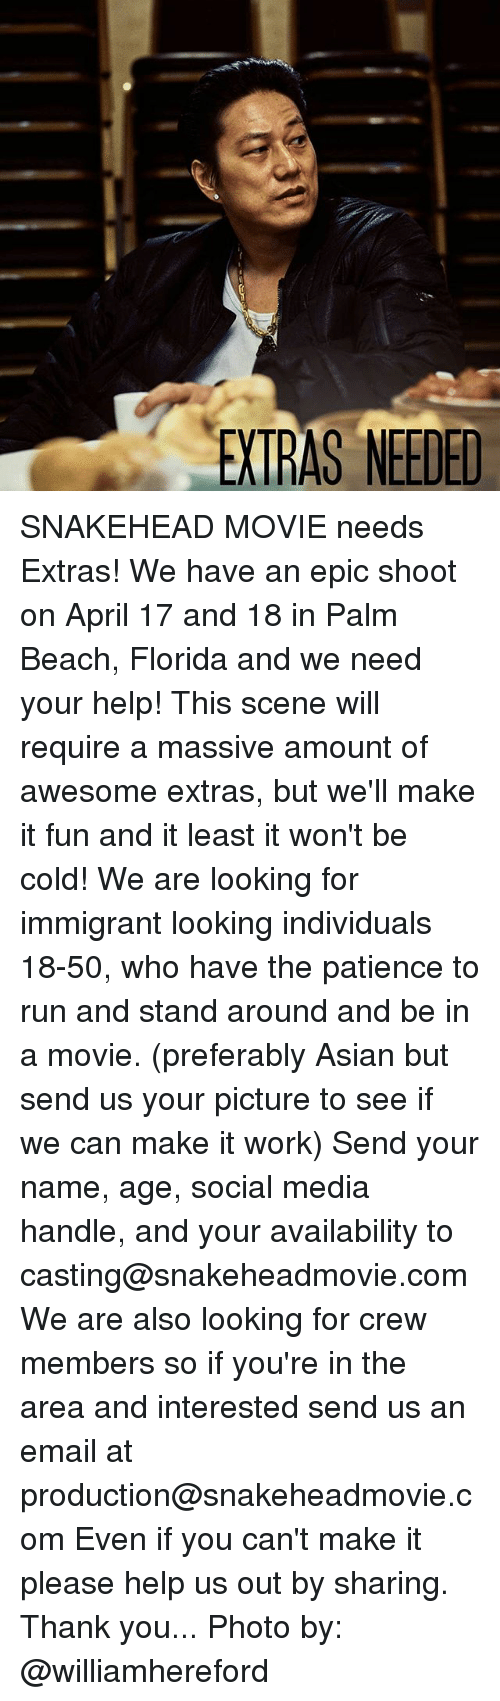 Asian, Memes, and Run: EXTRAS NEEDED SNAKEHEAD MOVIE needs Extras! We have an epic shoot on April 17 and 18 in Palm Beach, Florida and we need your help! This scene will require a massive amount of awesome extras, but we'll make it fun and it least it won't be cold! We are looking for immigrant looking individuals 18-50, who have the patience to run and stand around and be in a movie. (preferably Asian but send us your picture to see if we can make it work) Send your name, age, social media handle, and your availability to casting@snakeheadmovie.com We are also looking for crew members so if you're in the area and interested send us an email at production@snakeheadmovie.com Even if you can't make it please help us out by sharing. Thank you... Photo by: @williamhereford